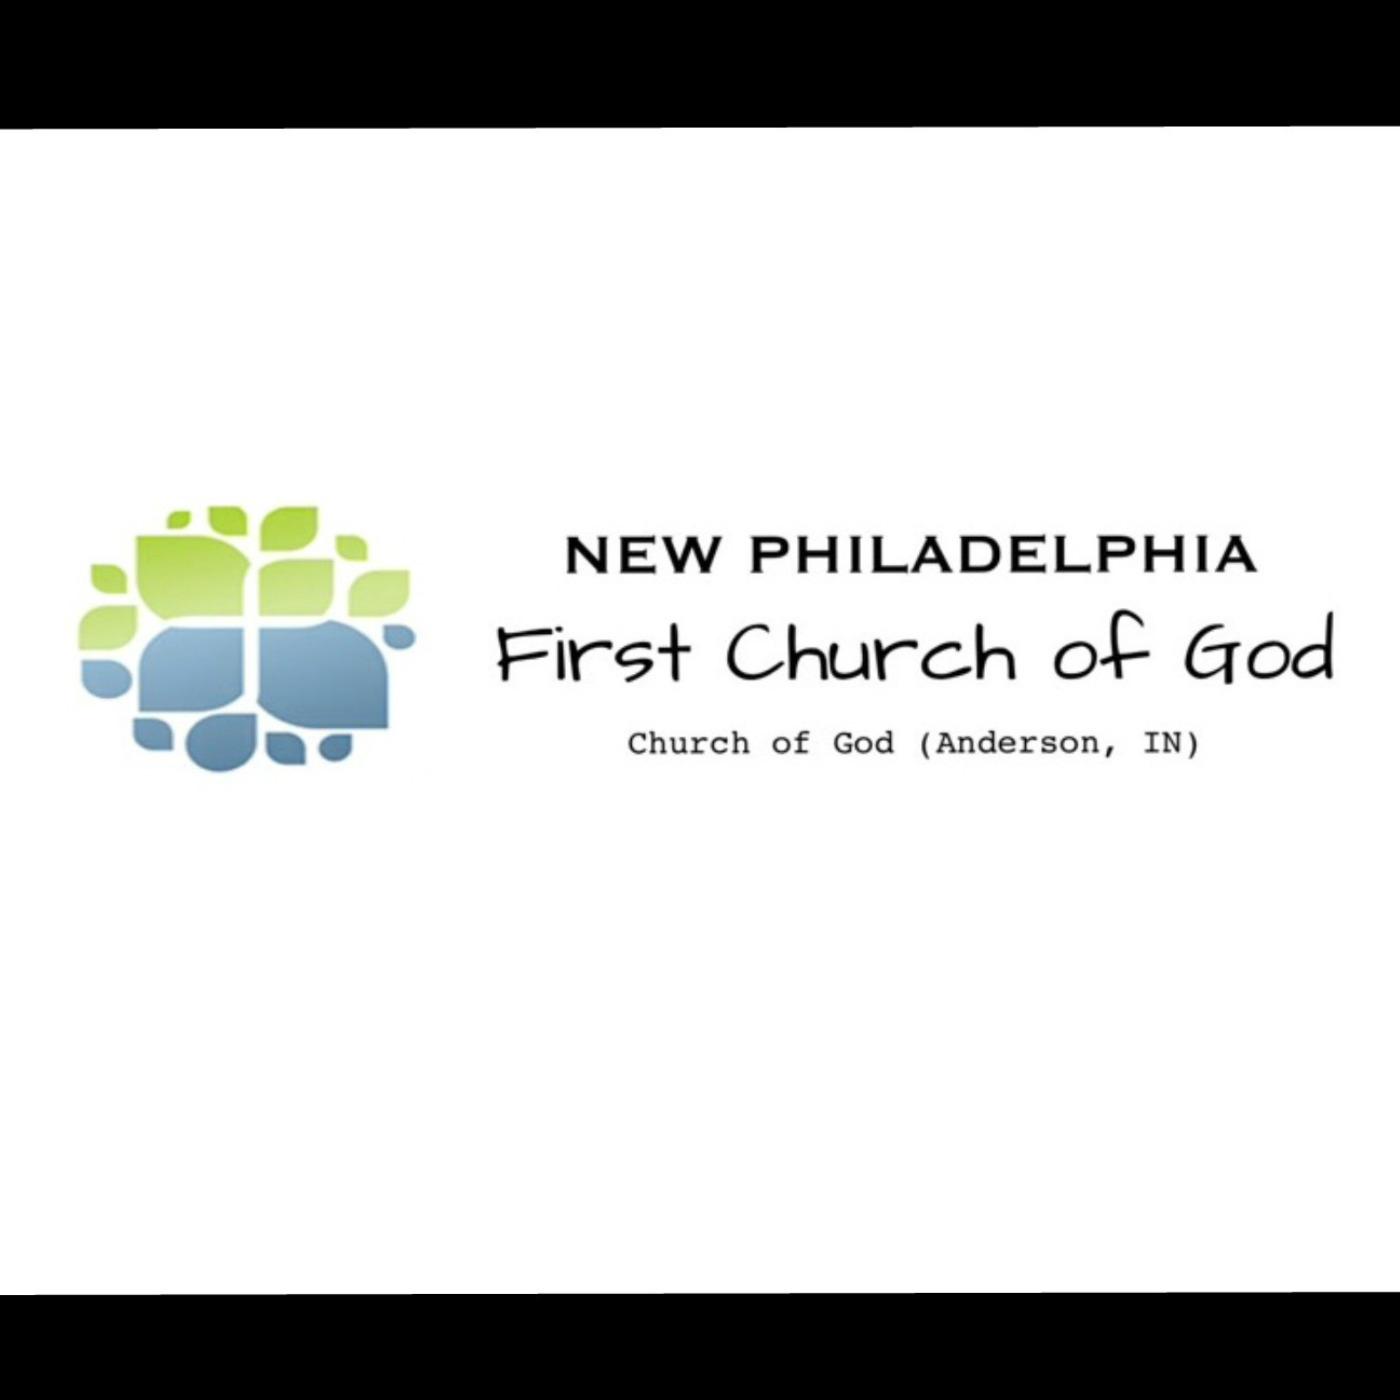 New Philadelphia First Church of God